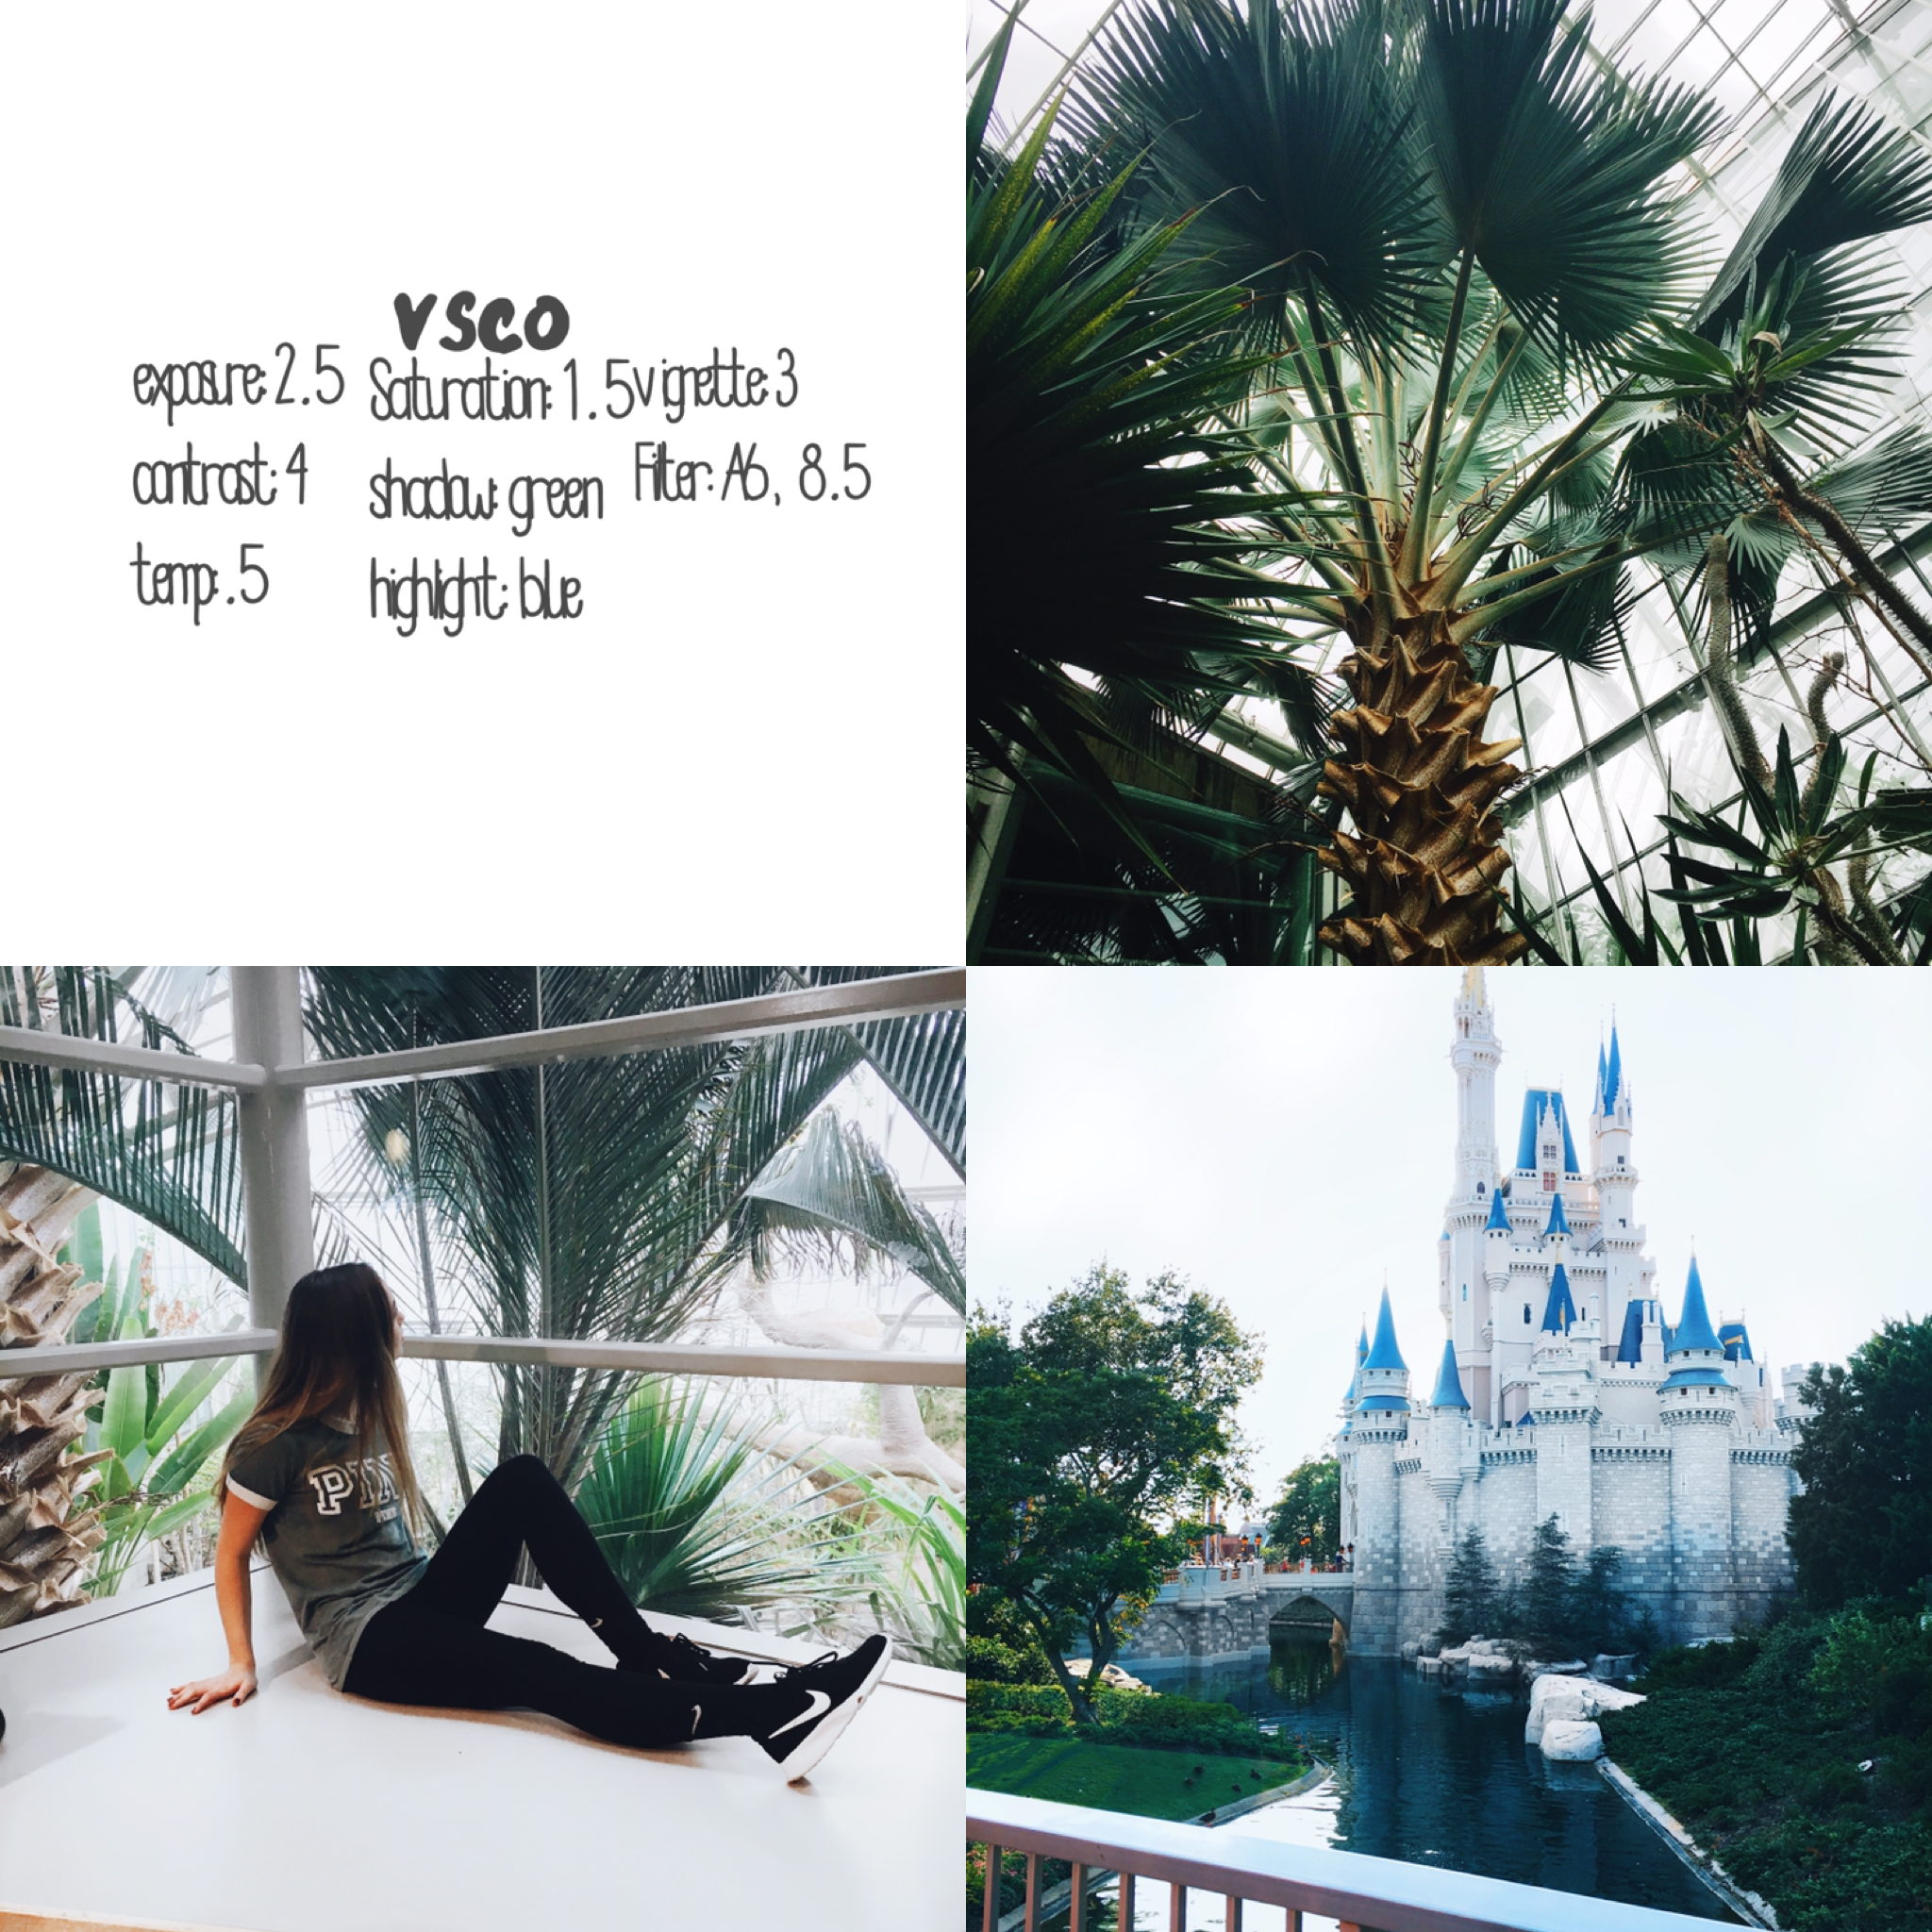 Follow It Marissan1c0le On Instagram Vsco Filter Instagram Theme Inspiration Idea Ideas Blue Vsco Photography Instagram Theme Feed Summer Instagram